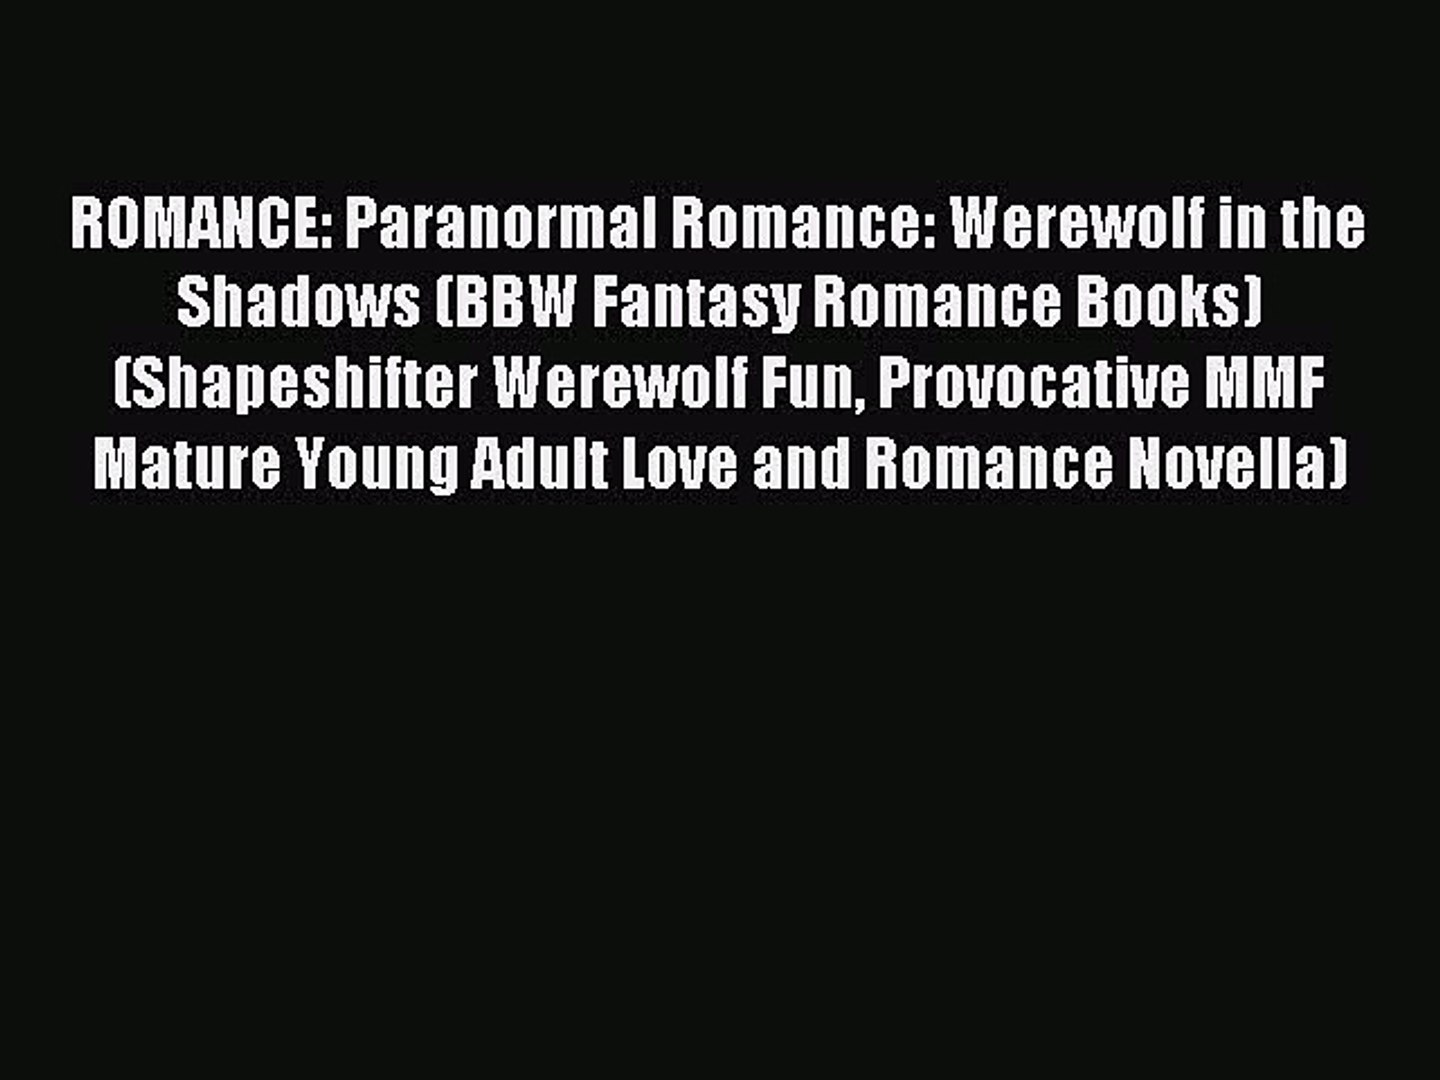 PDF Download) ROMANCE: Paranormal Romance: Werewolf in the